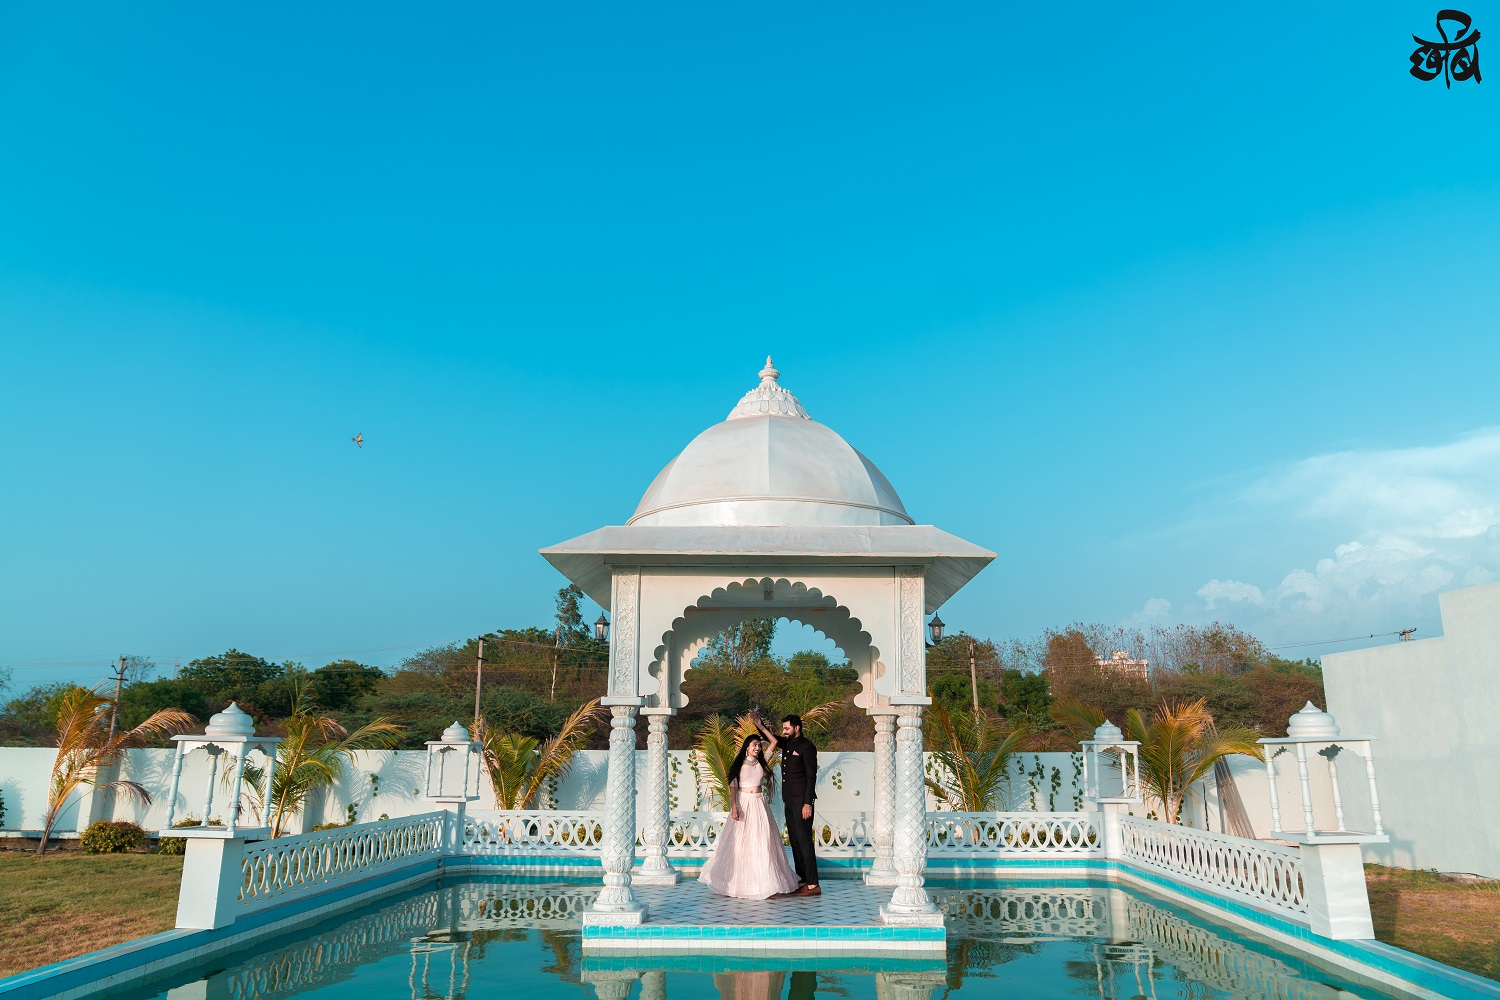 parth-kinjal, Outdoor Photography